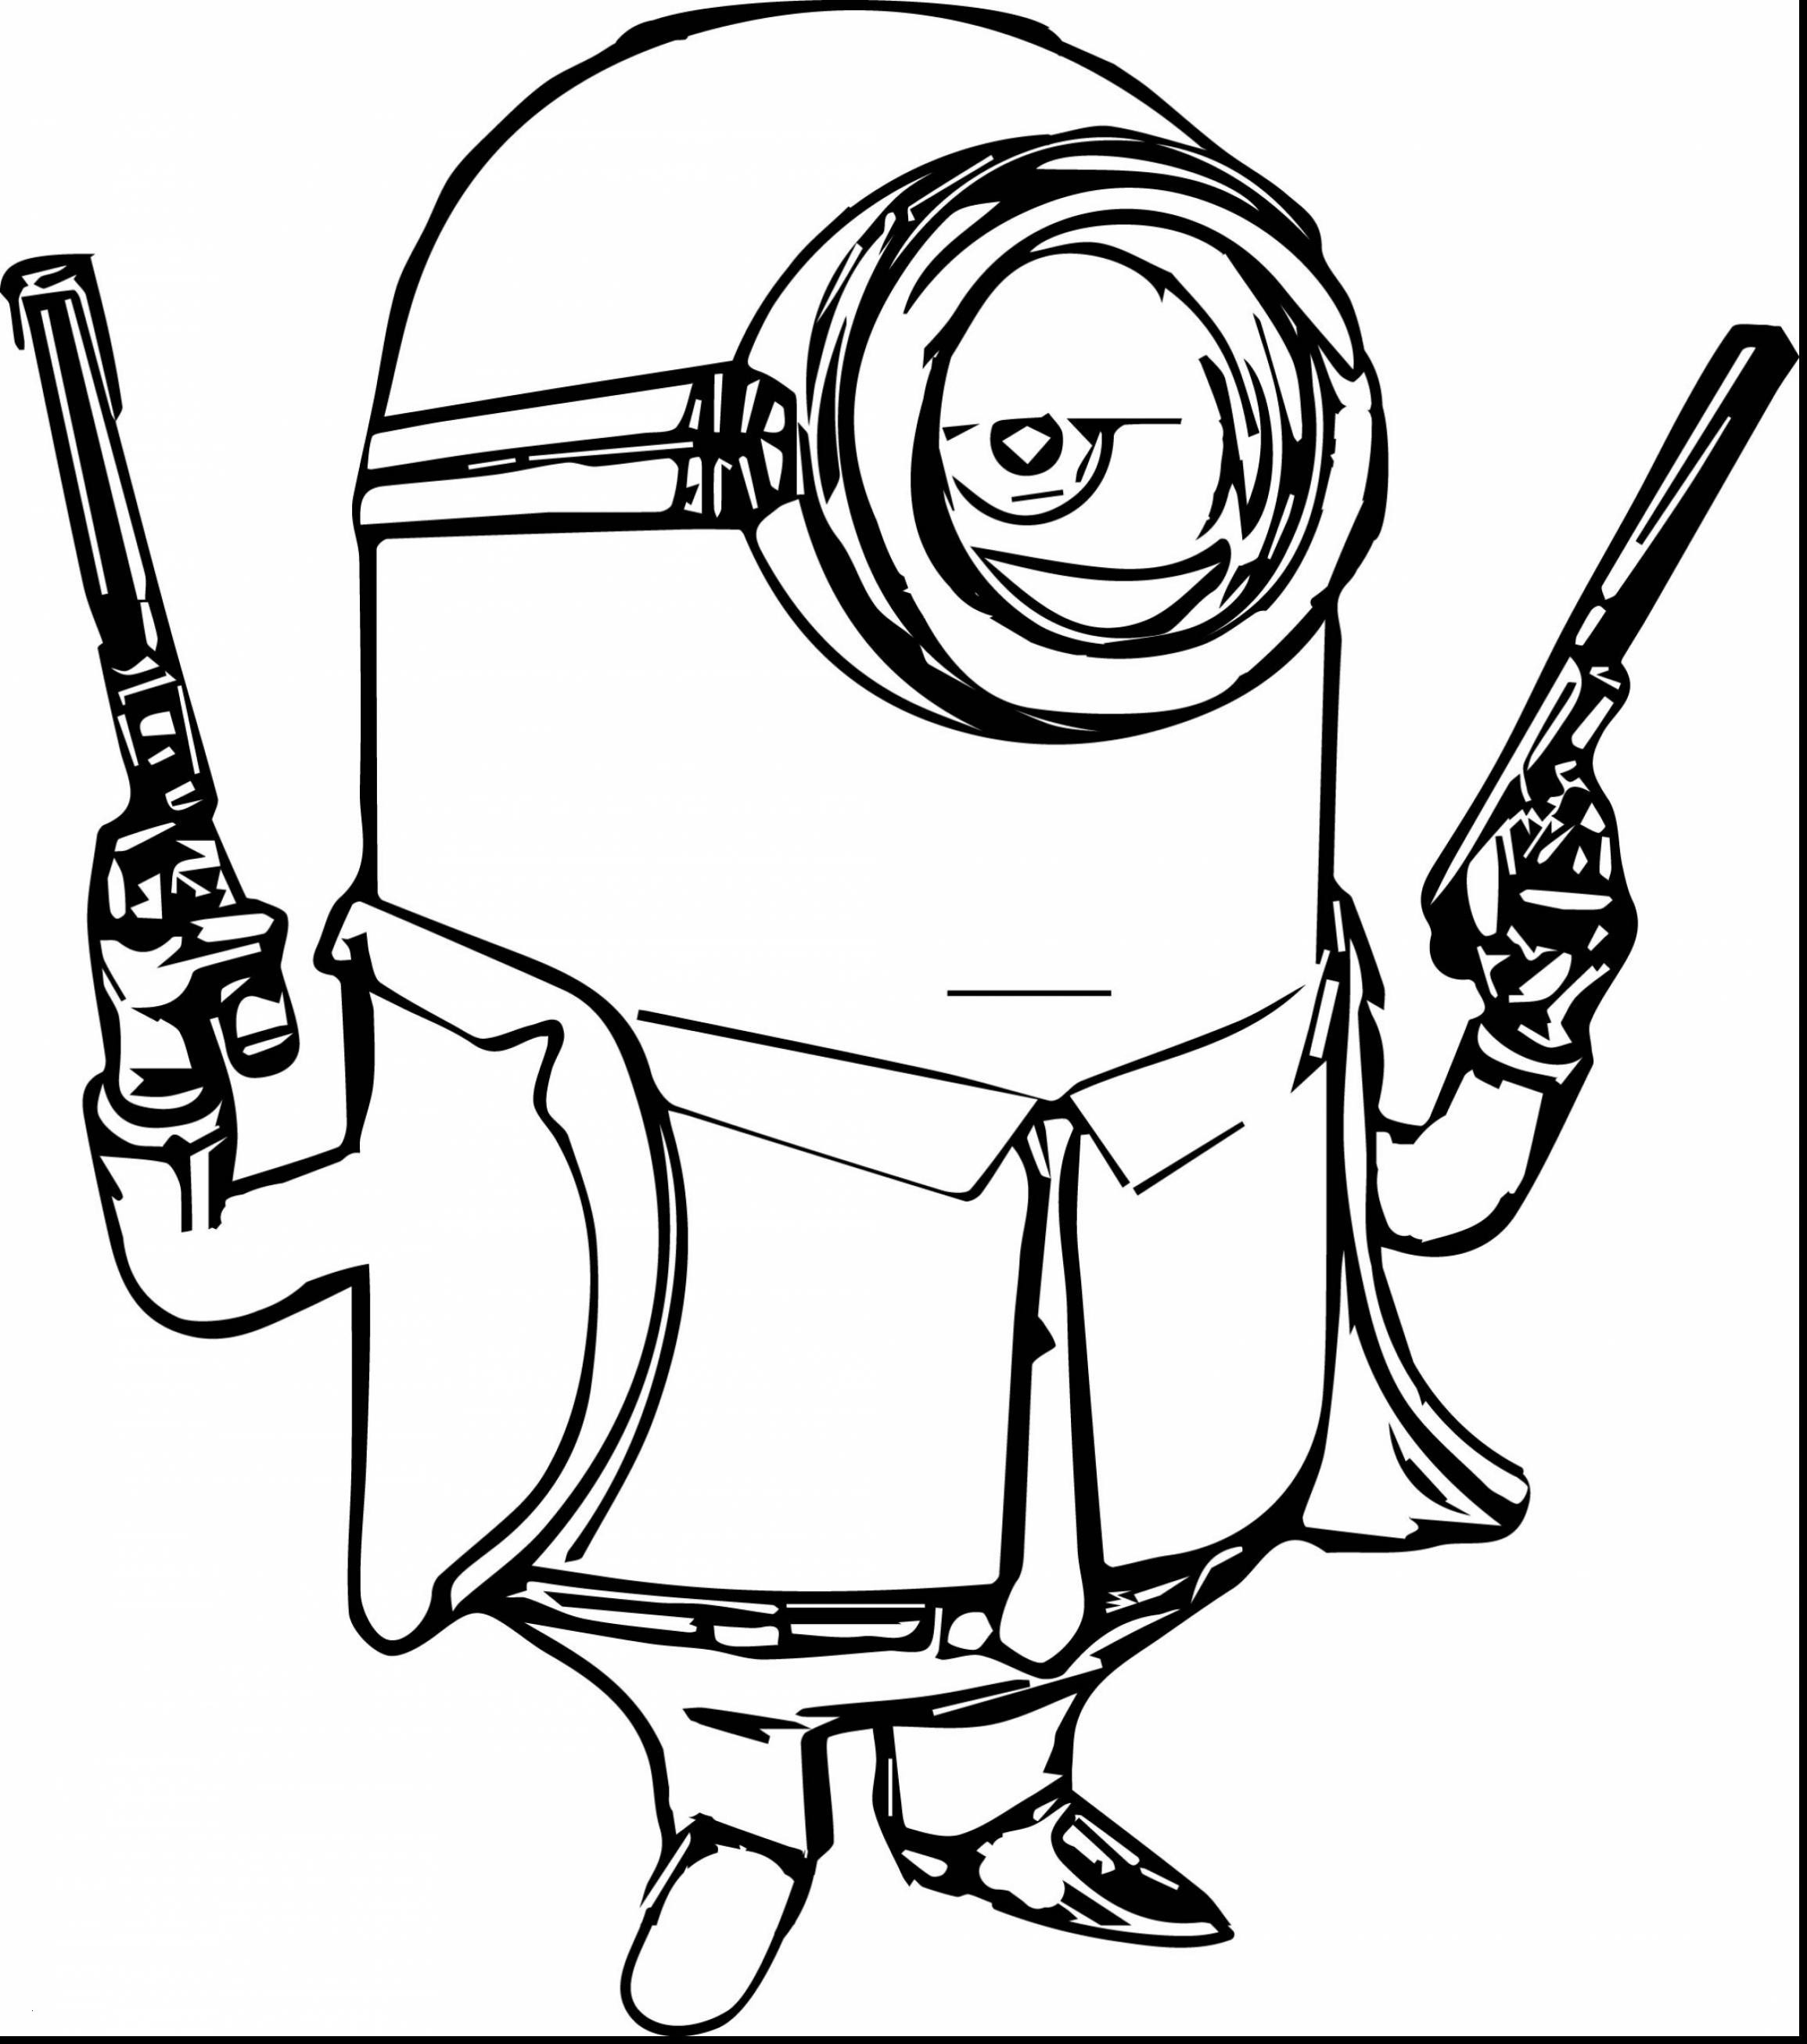 Ausmalbilder Zum Ausdrucken Minions Das Beste Von Bob the Minion Coloring Pages Coloring Pages Coloring Pages Galerie